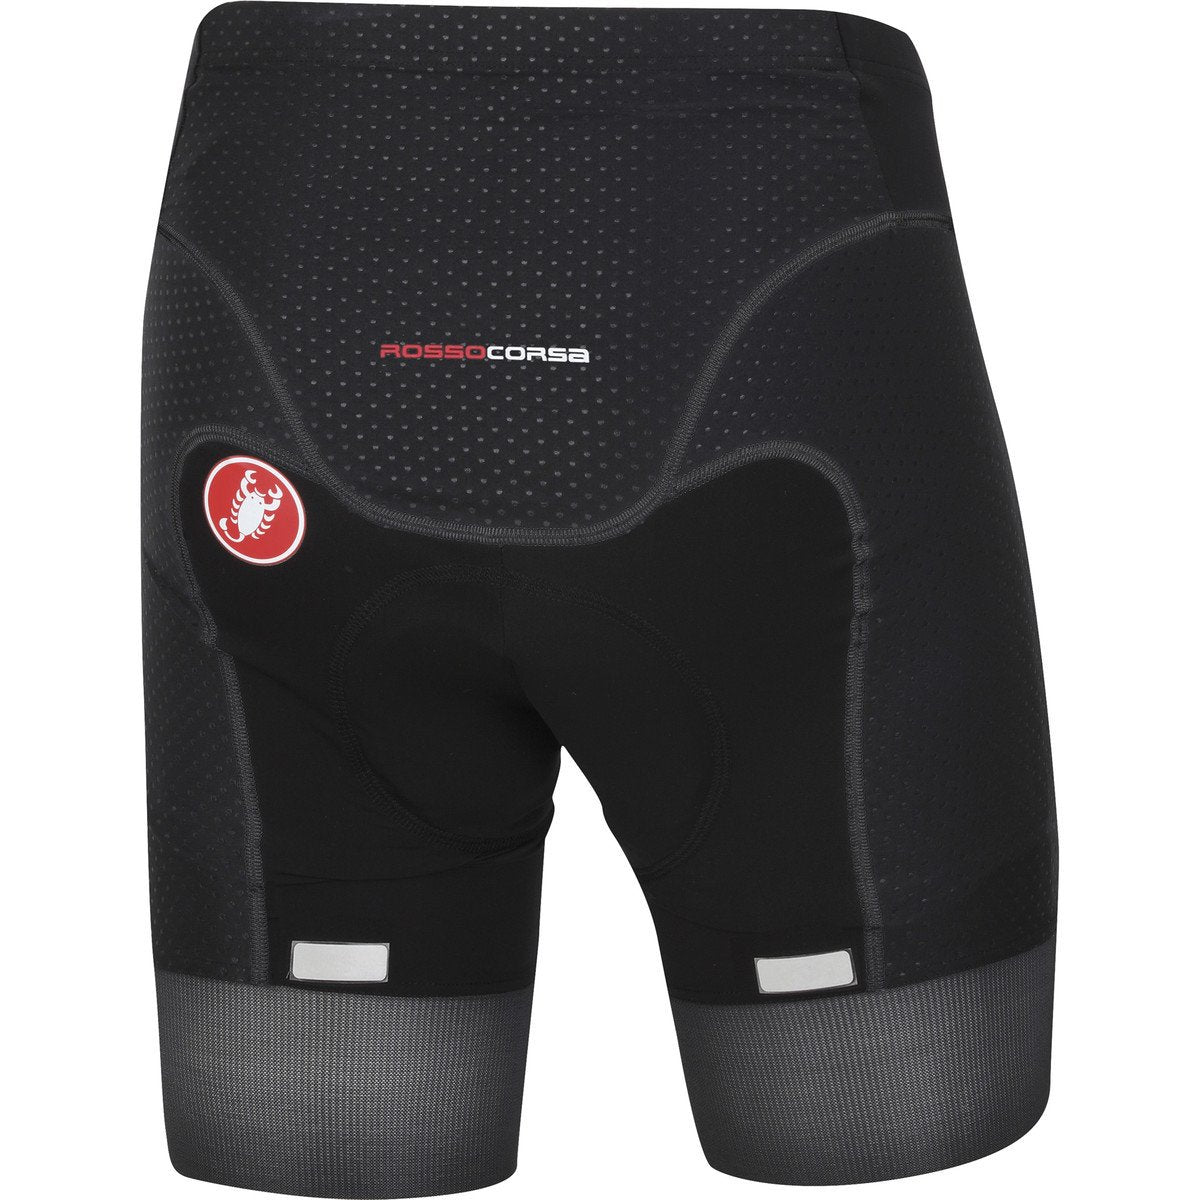 Castelli Free Aero Race Short back